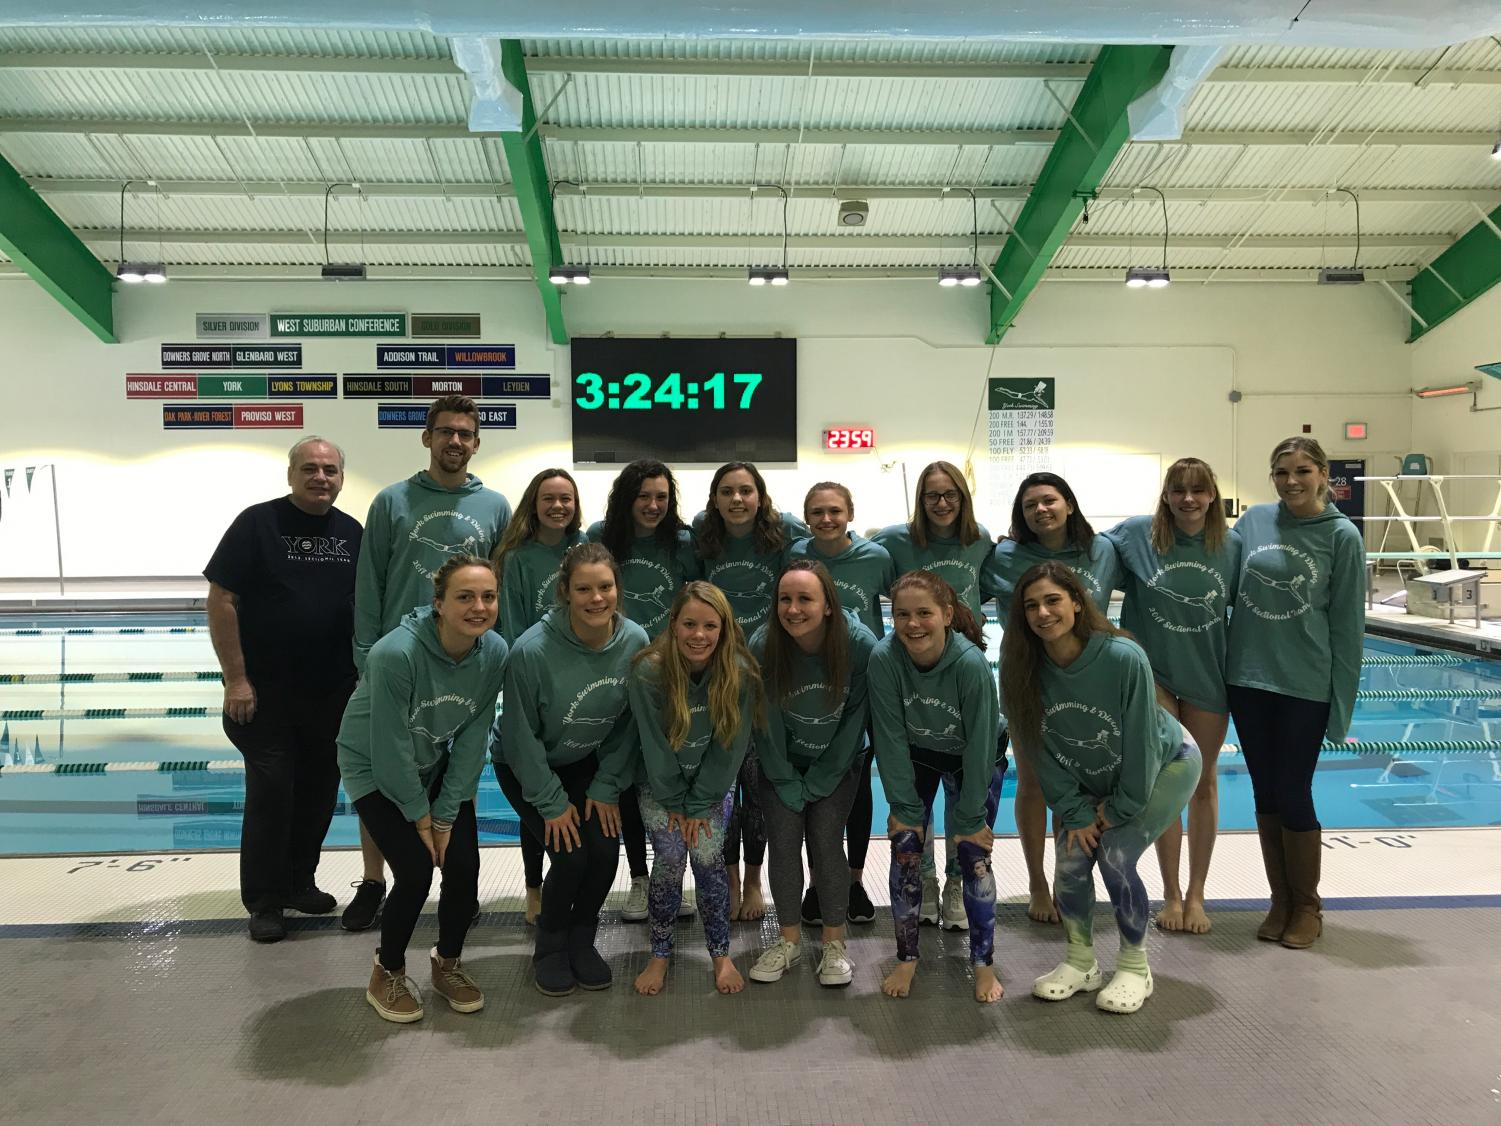 The Lady Dukes Swim and Dive show their team spirit in matching sweatshirts. Fri. Nov. 10, 2017.